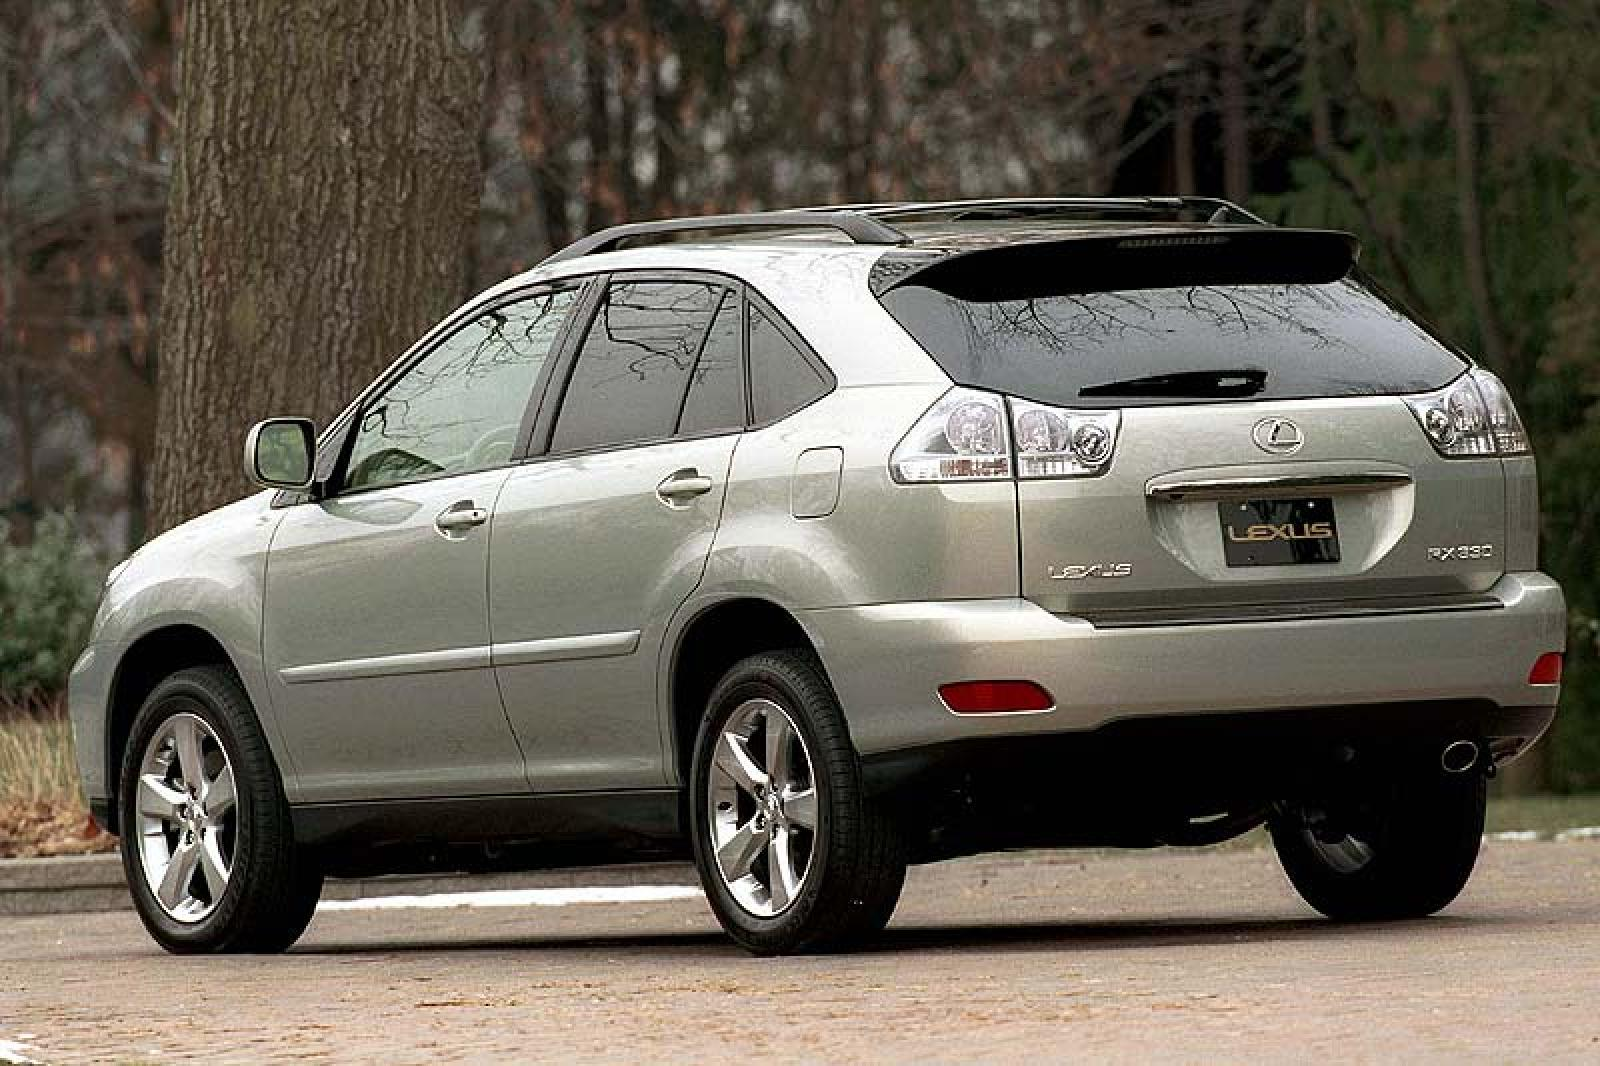 2006 lexus rx 330 information and photos zombiedrive. Black Bedroom Furniture Sets. Home Design Ideas